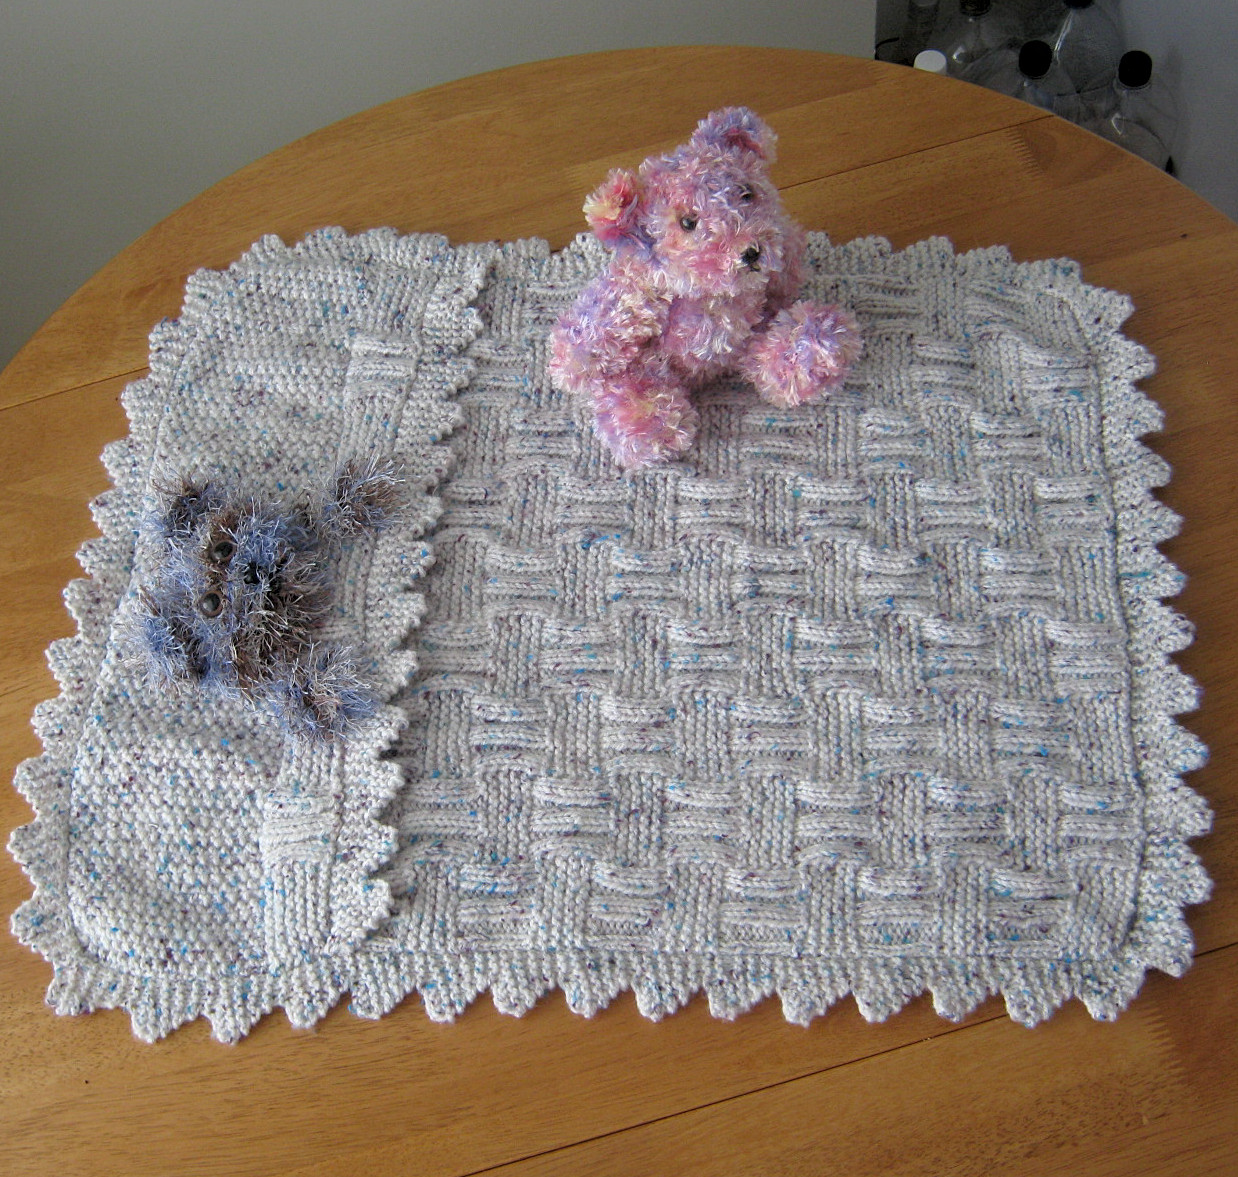 Knitting Pattern For Teddy Bear Baby Blanket : PollyKay and Sidders: October 2011